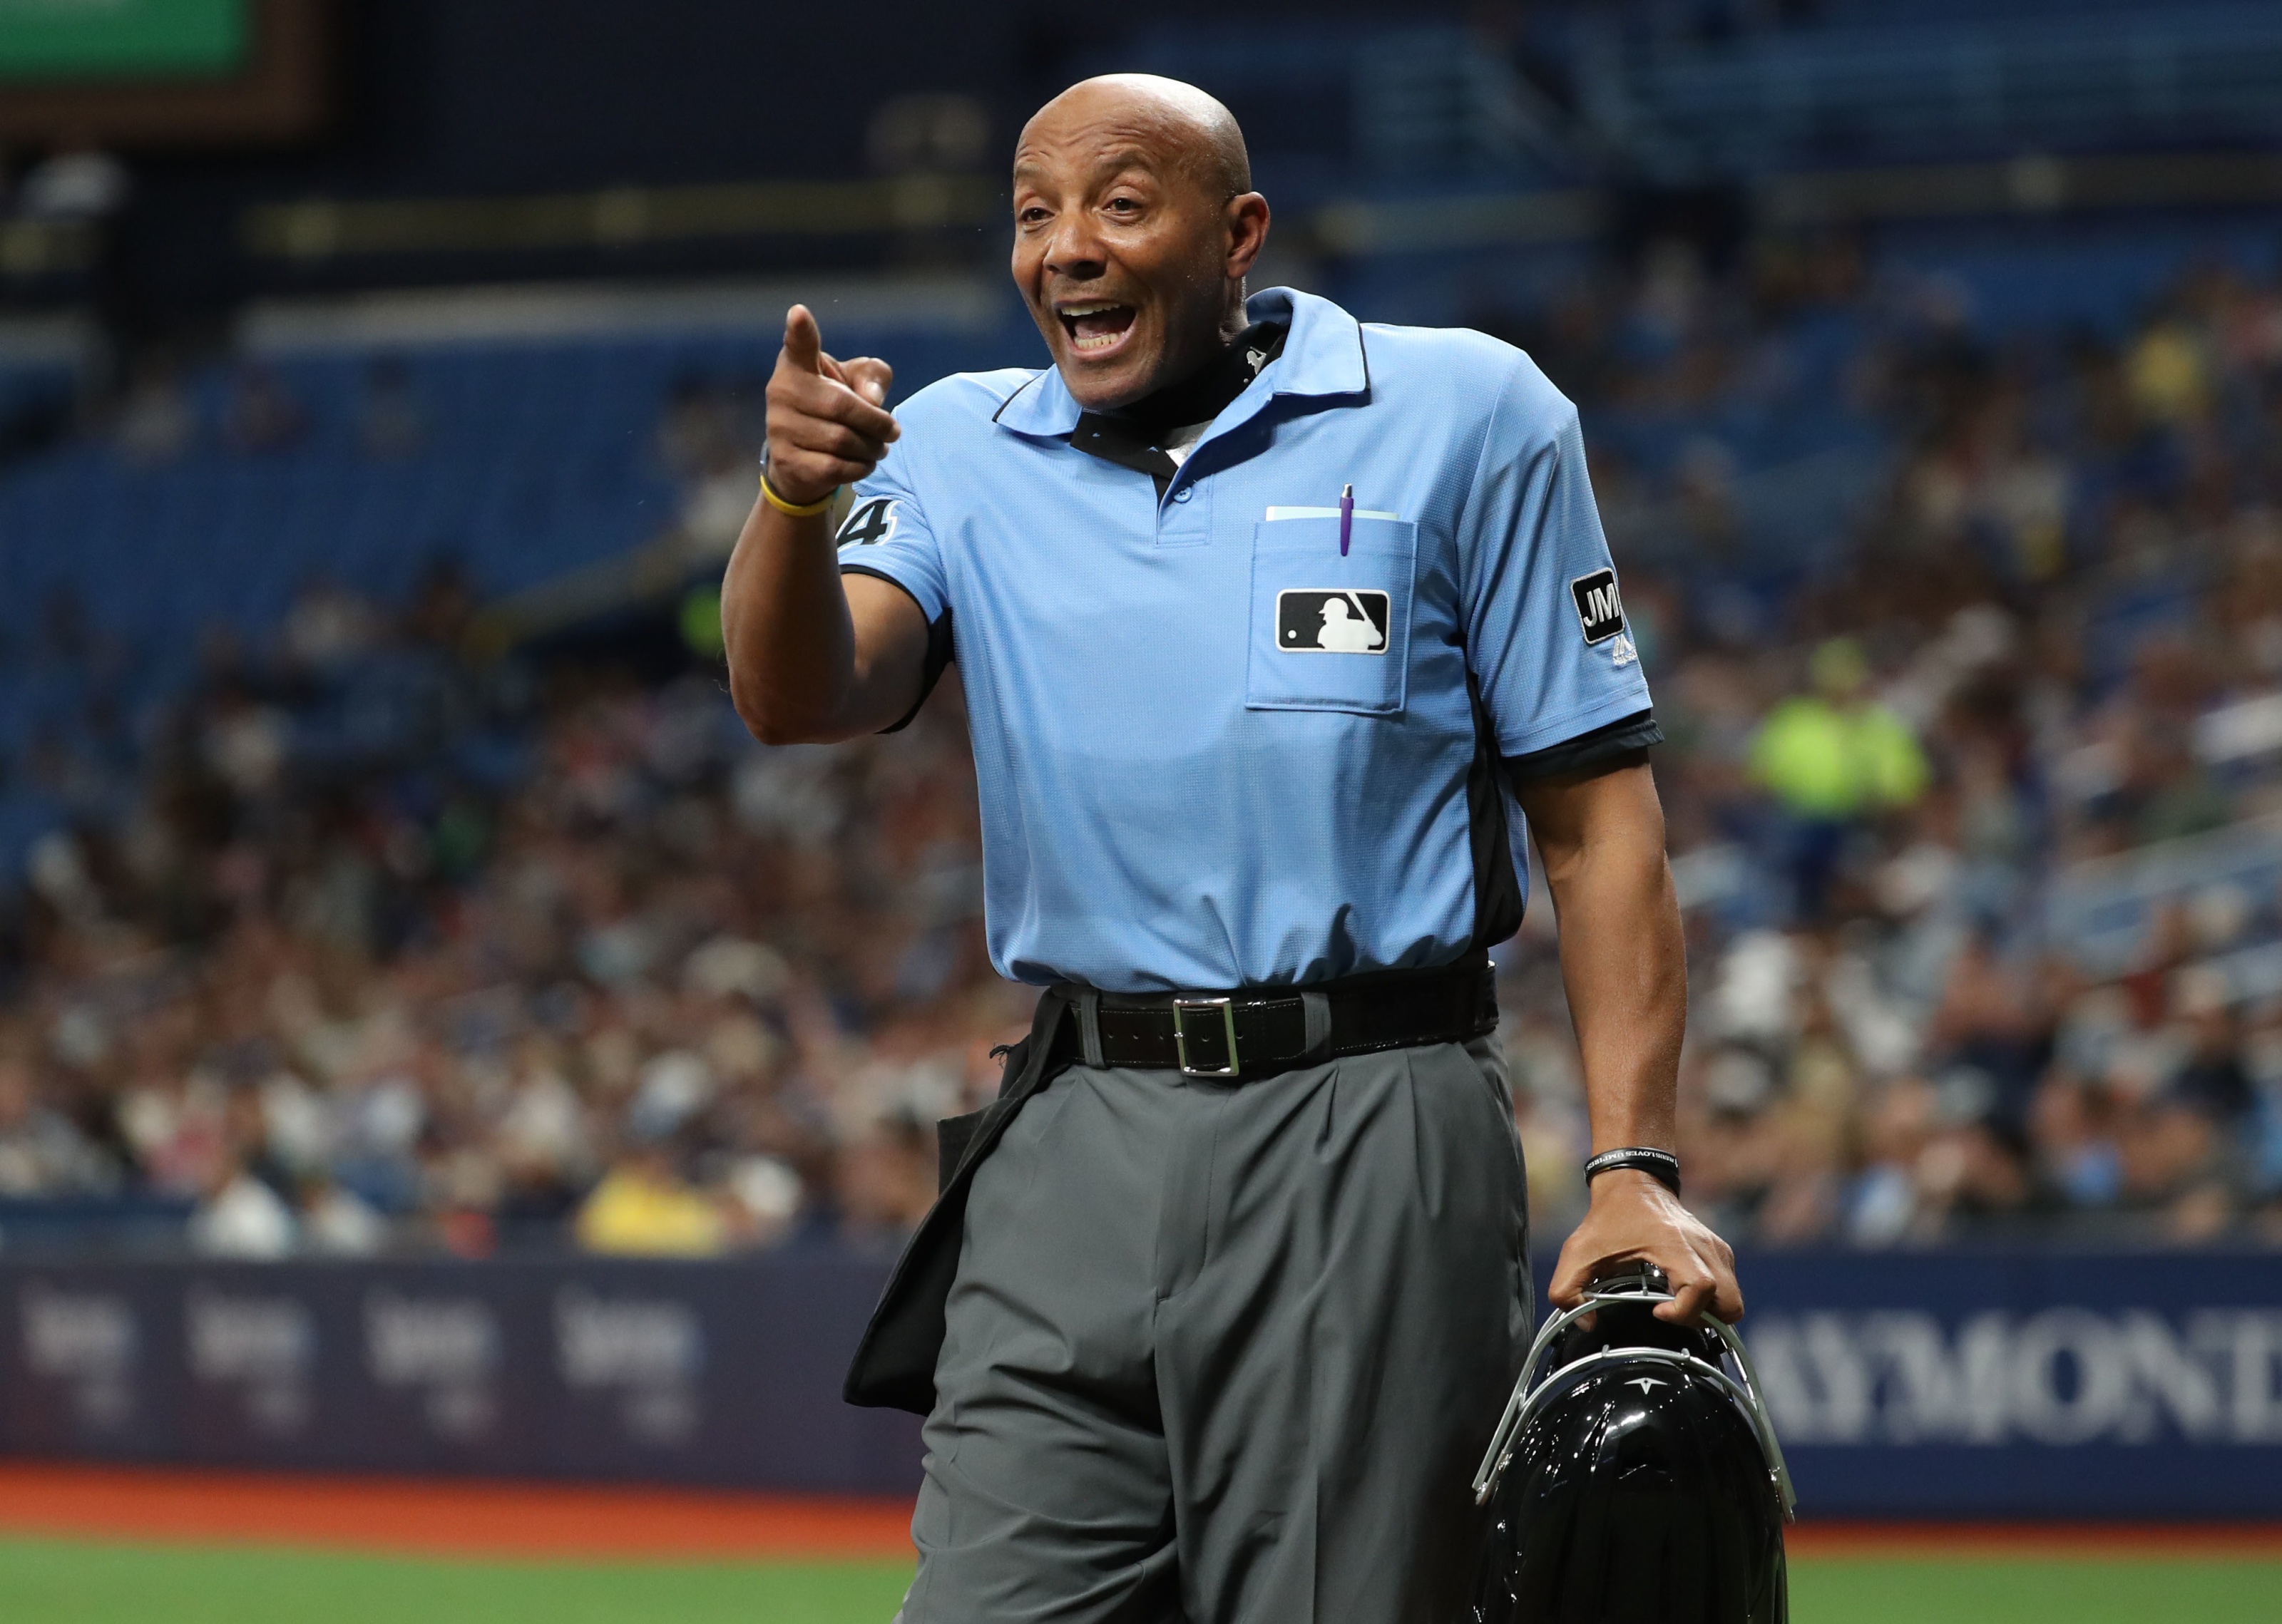 Yankees fans hate CB Bucknor more than the Tampa Bay Rays